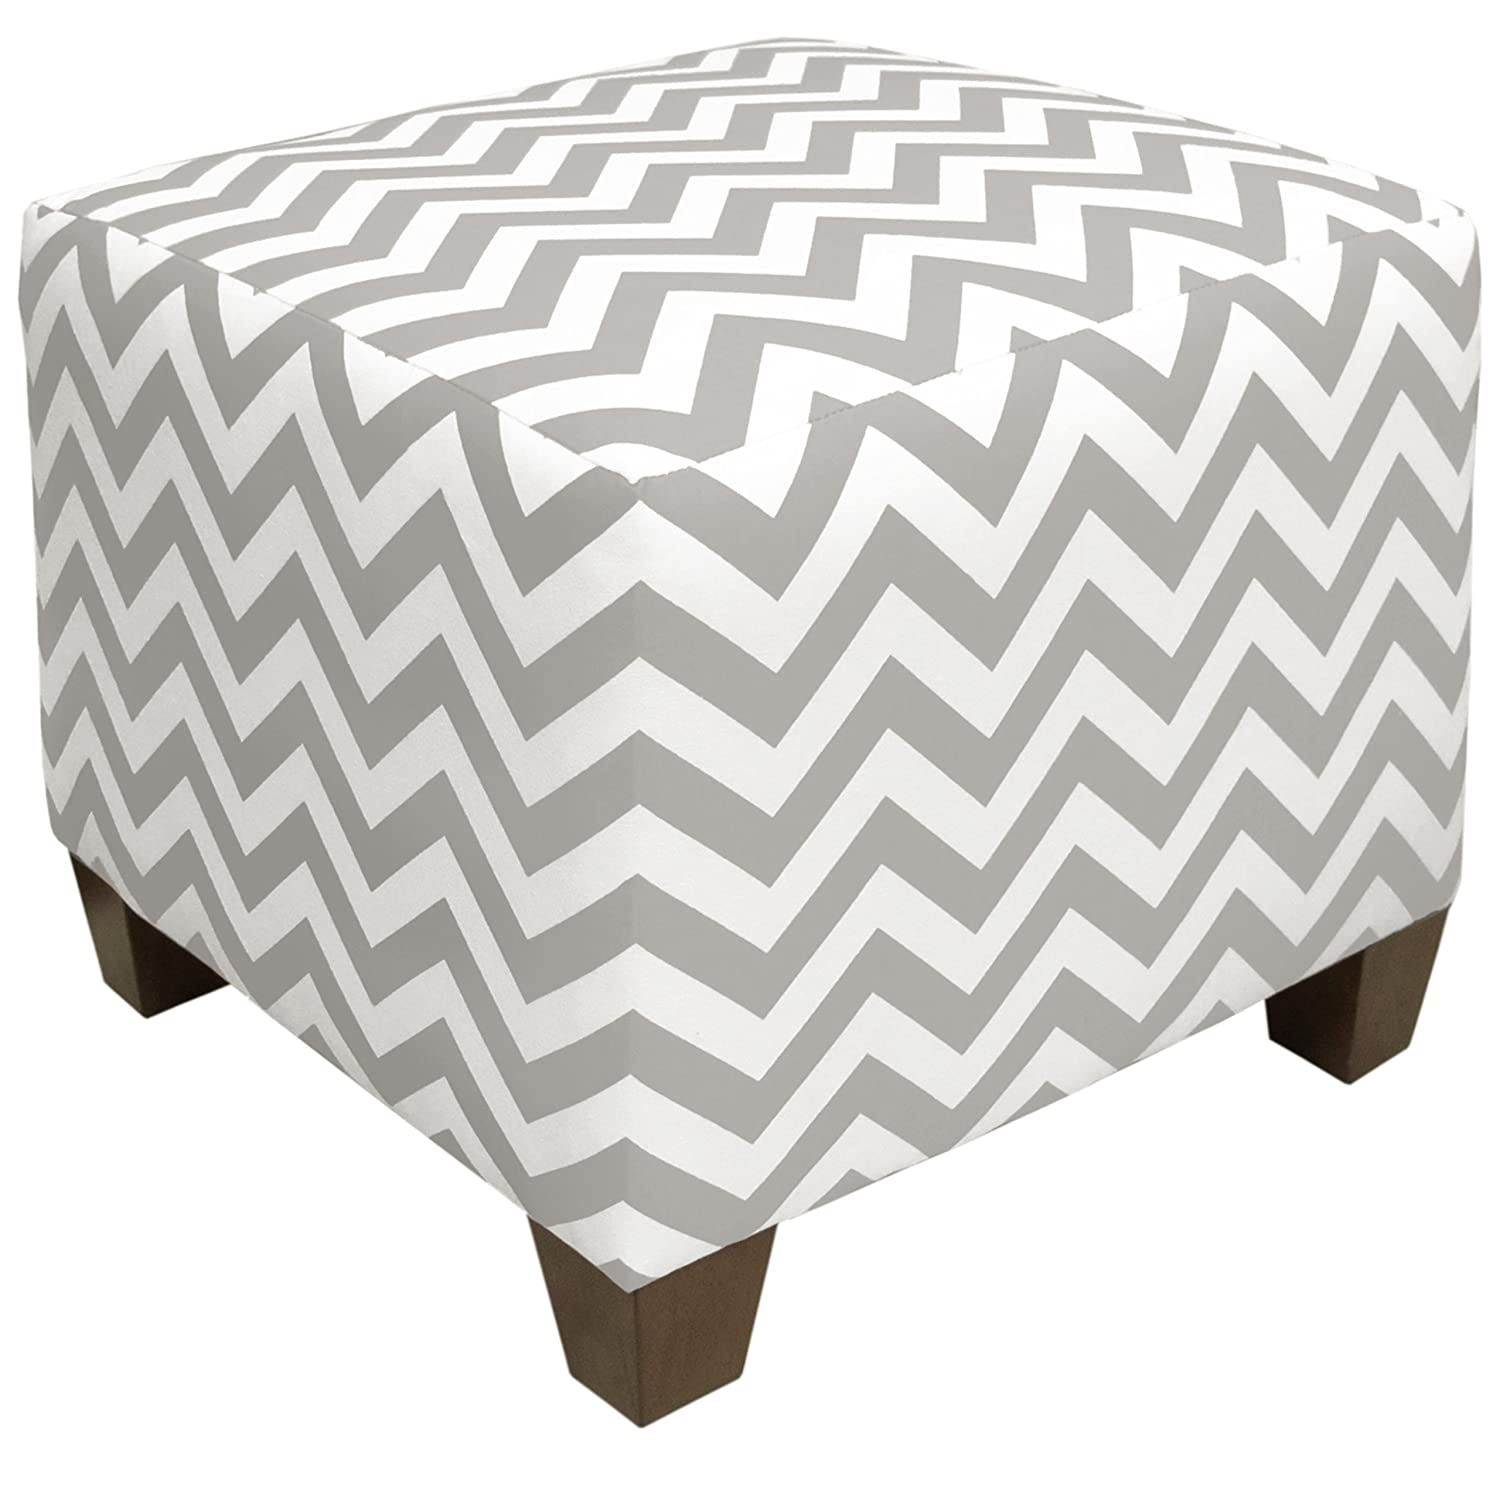 Beautiful Amazon.com: Skyline Furniture Square Ottoman, Zig Zag Ash White: Kitchen U0026  Dining